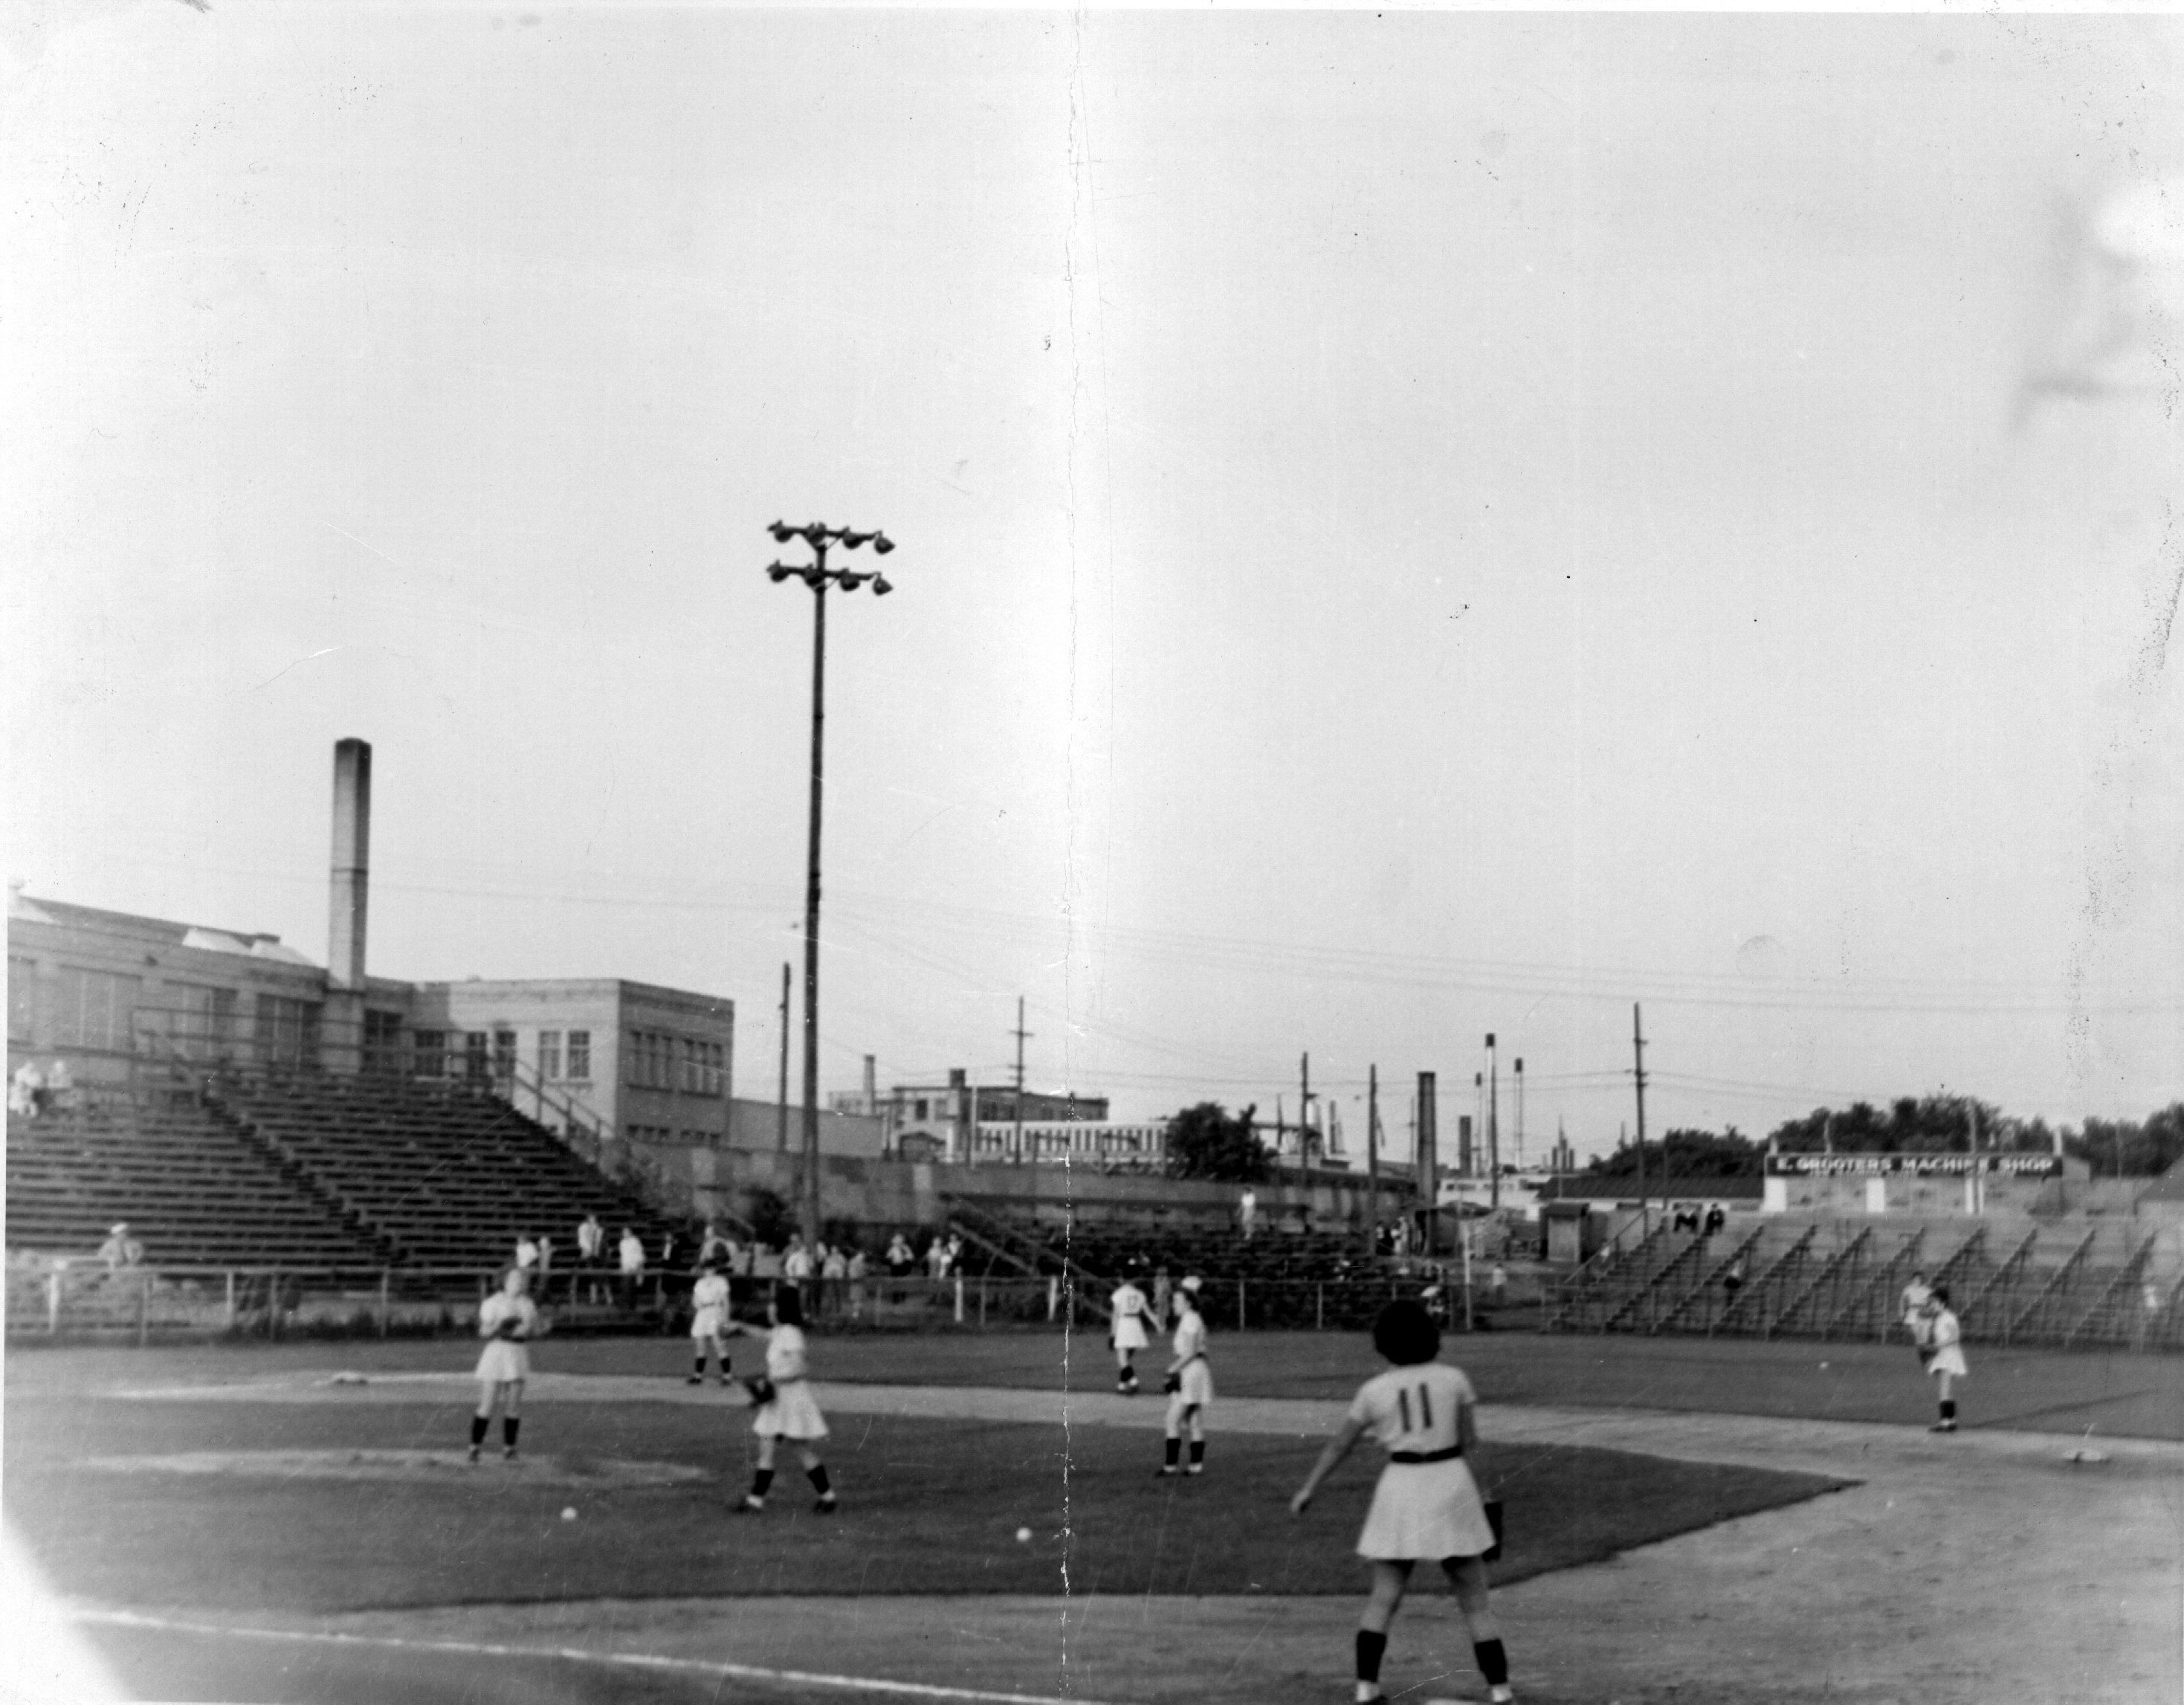 The Chicks playing at Smith Field (Courtesy of The History Museum, South Bend)